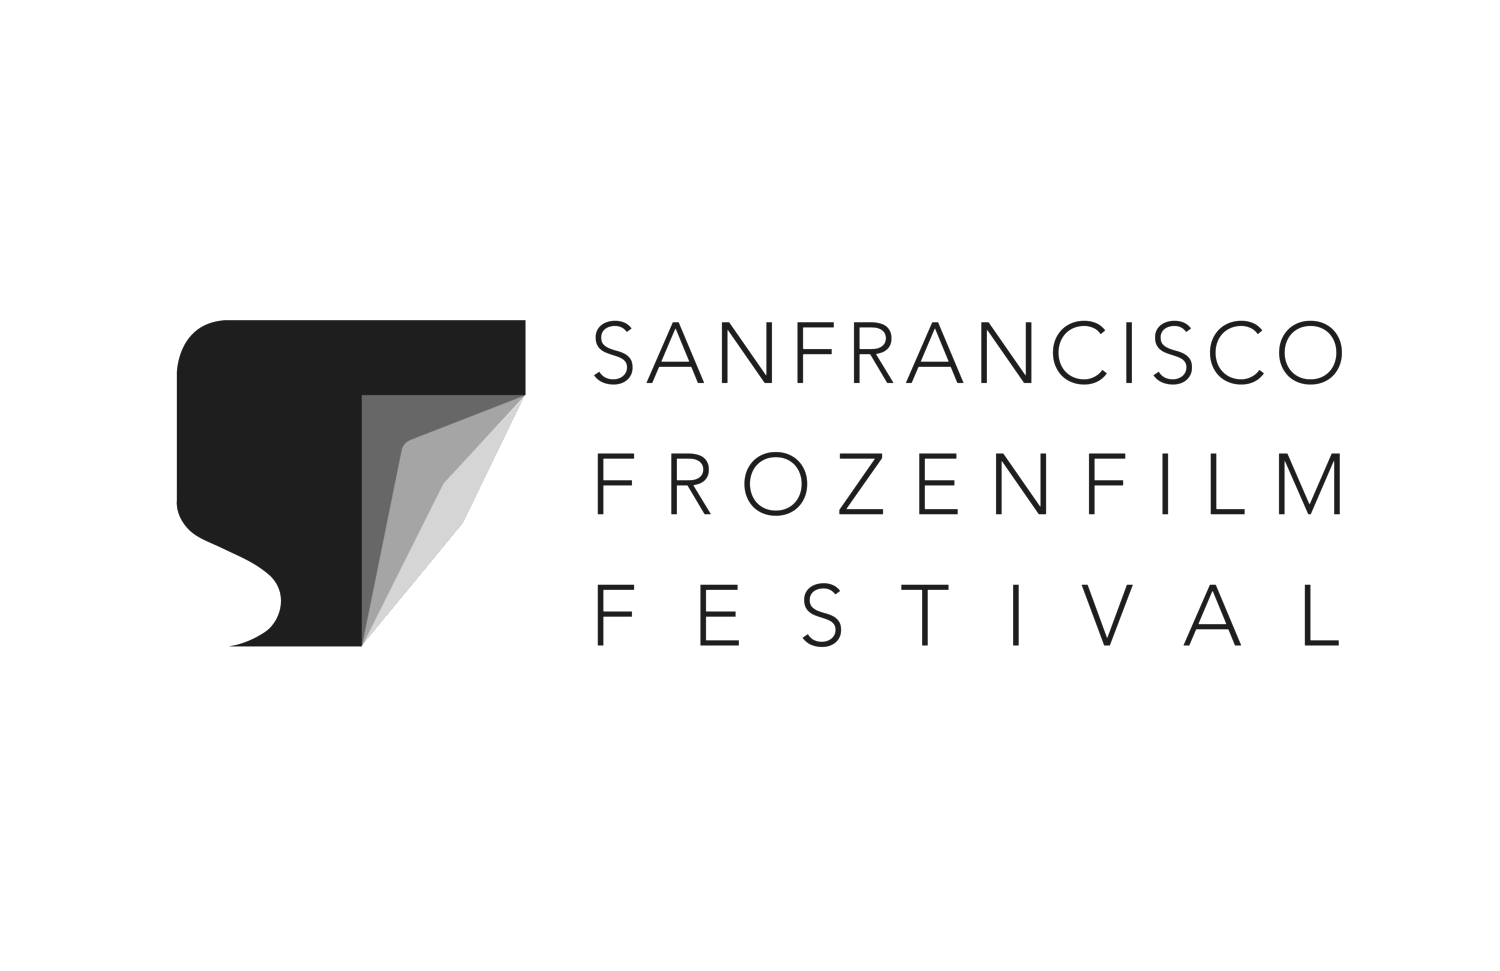 San Francisco Frozen Film Festival (SFFFF)